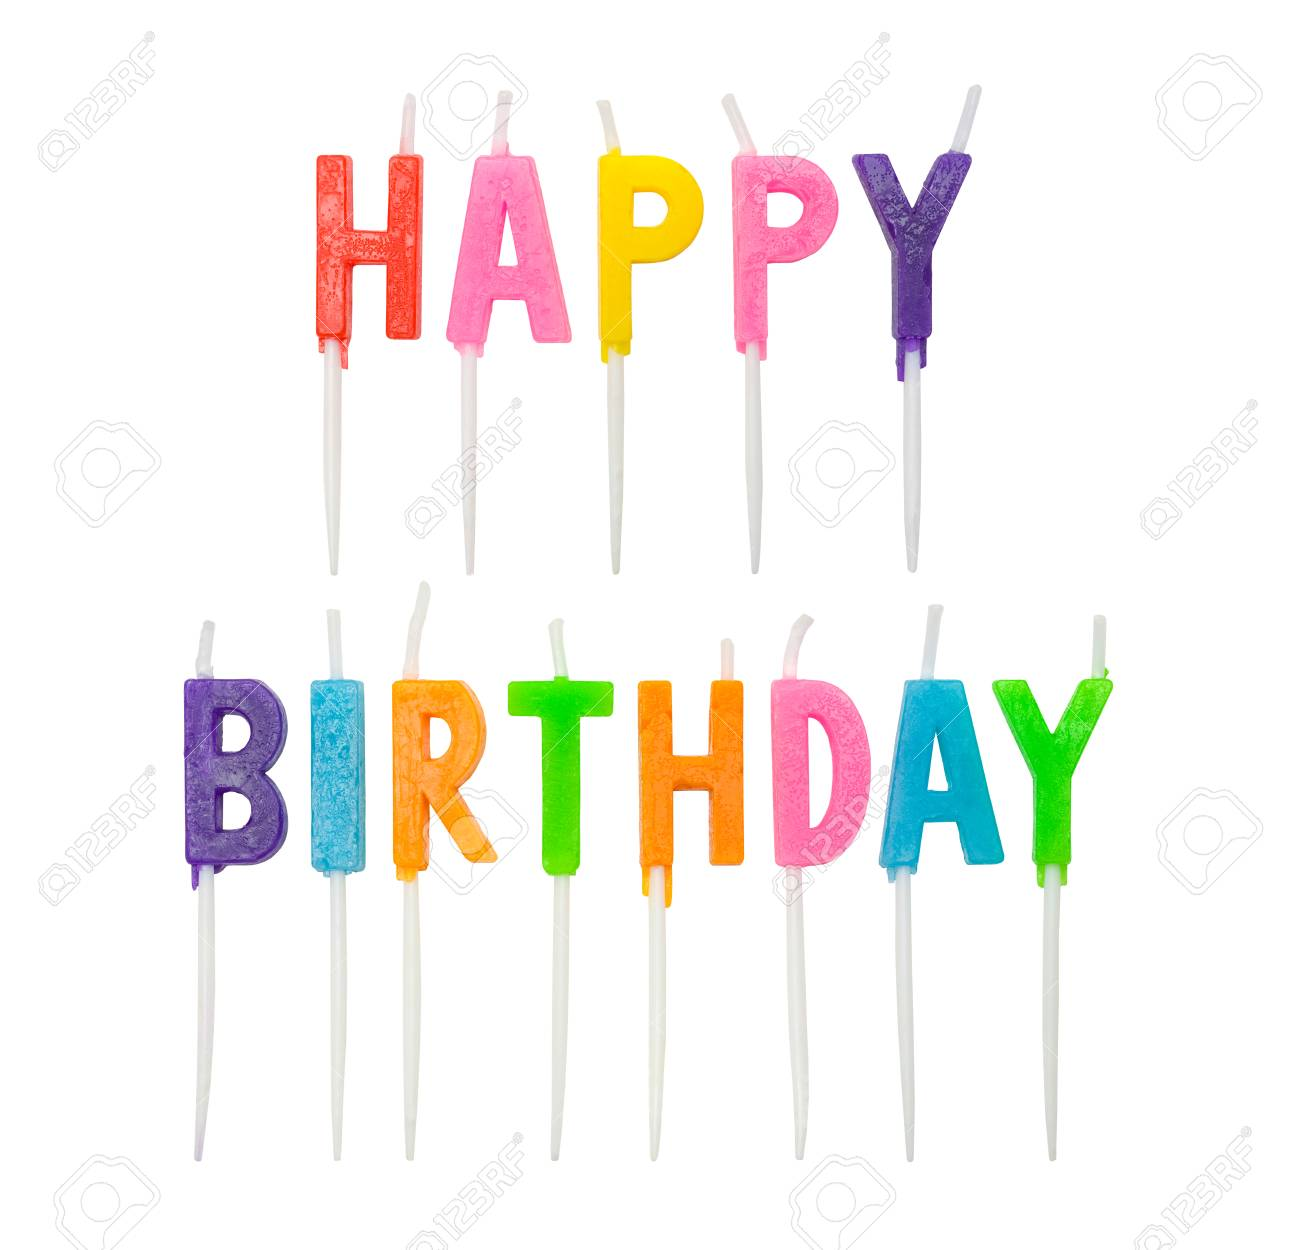 Candles That Spell Out Happy Birthday Cut Out Stock Photo Picture And Royalty Free Image Image 76478552